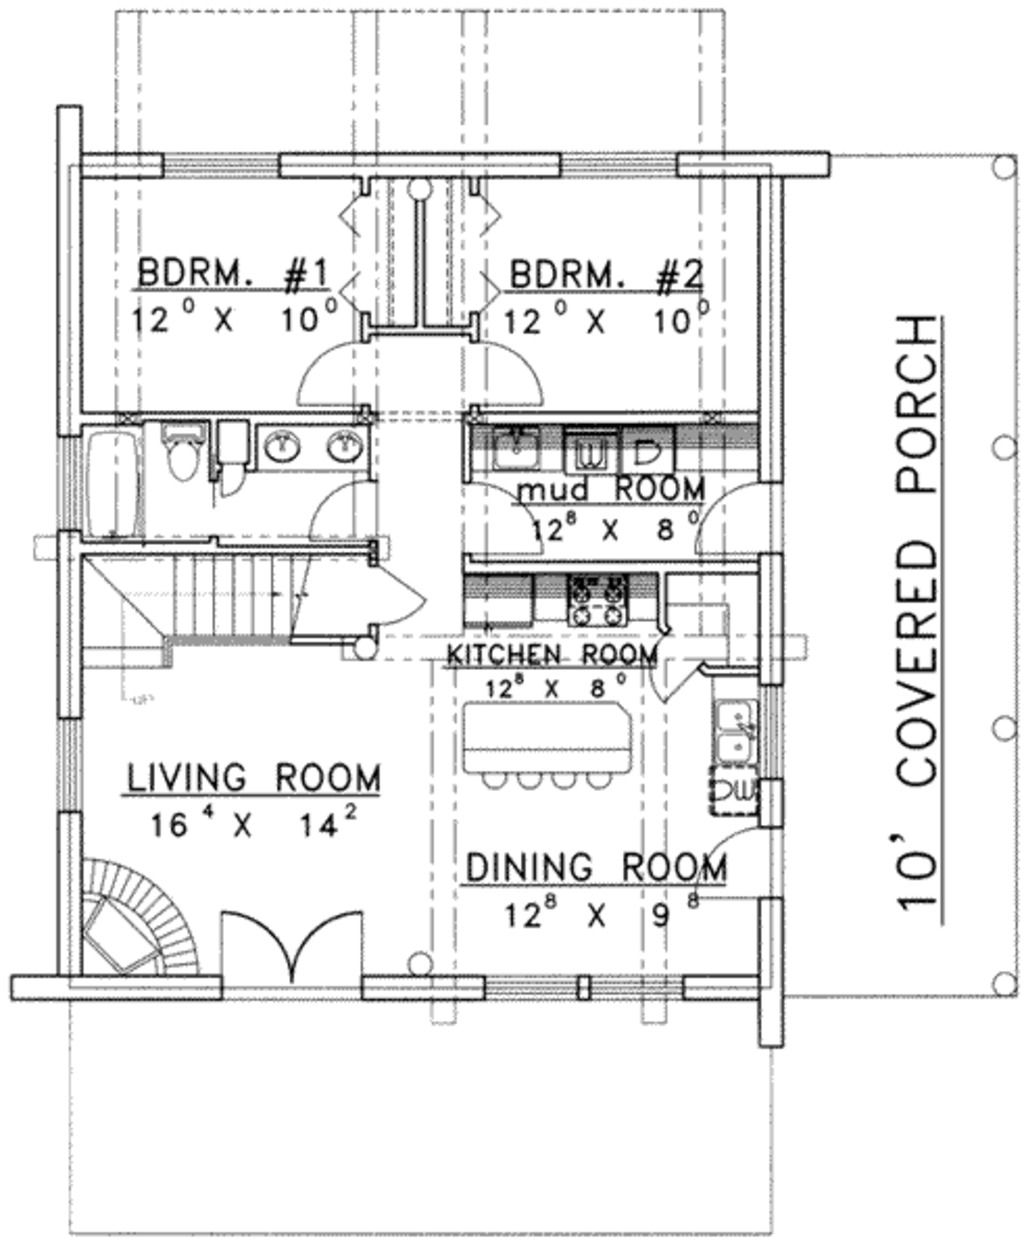 Log Style House Plan 2 Beds 2 Baths 1830 Sq Ft Plan 117 484 Mother In Law Apartment In Law House House Plan With Loft